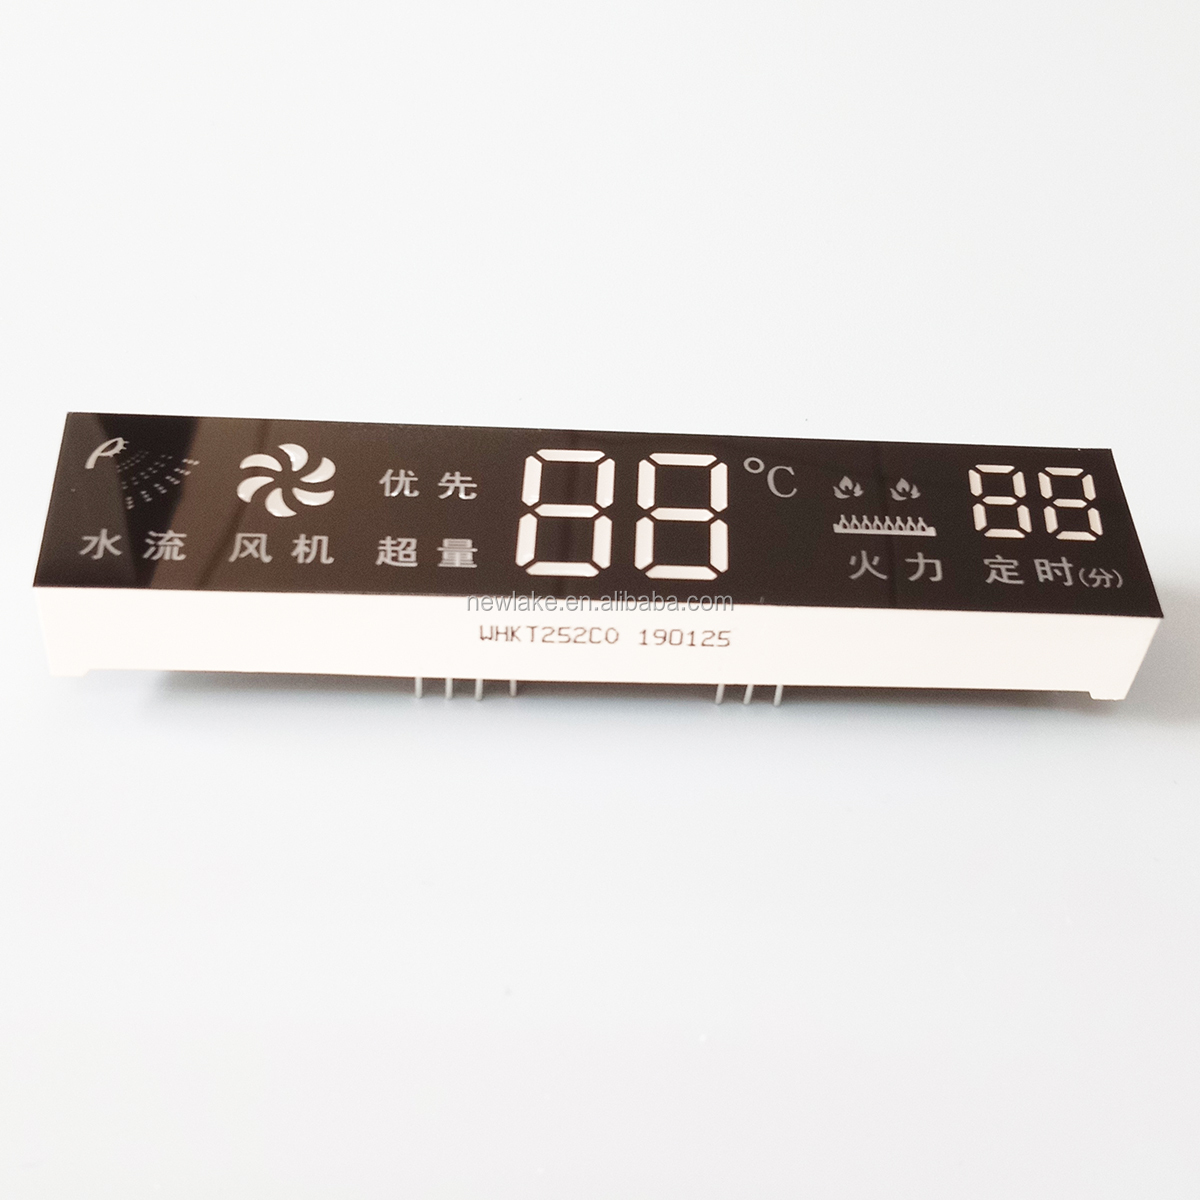 Home Appliance Display Module custom voltmeter display 7 segment led display